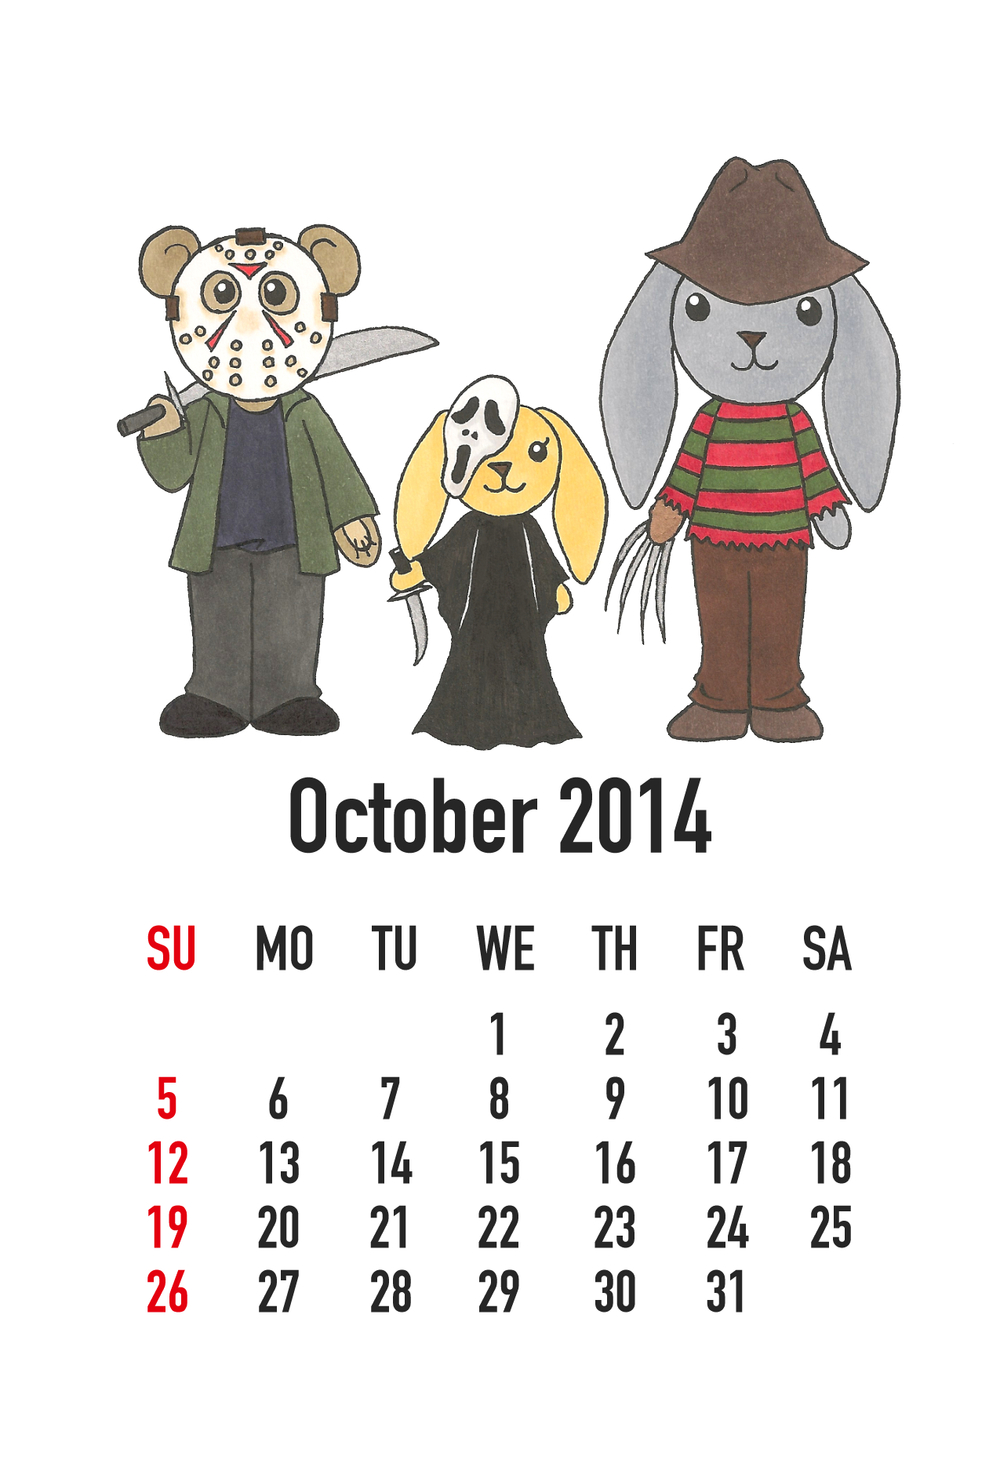 October 2014: Horror Movies